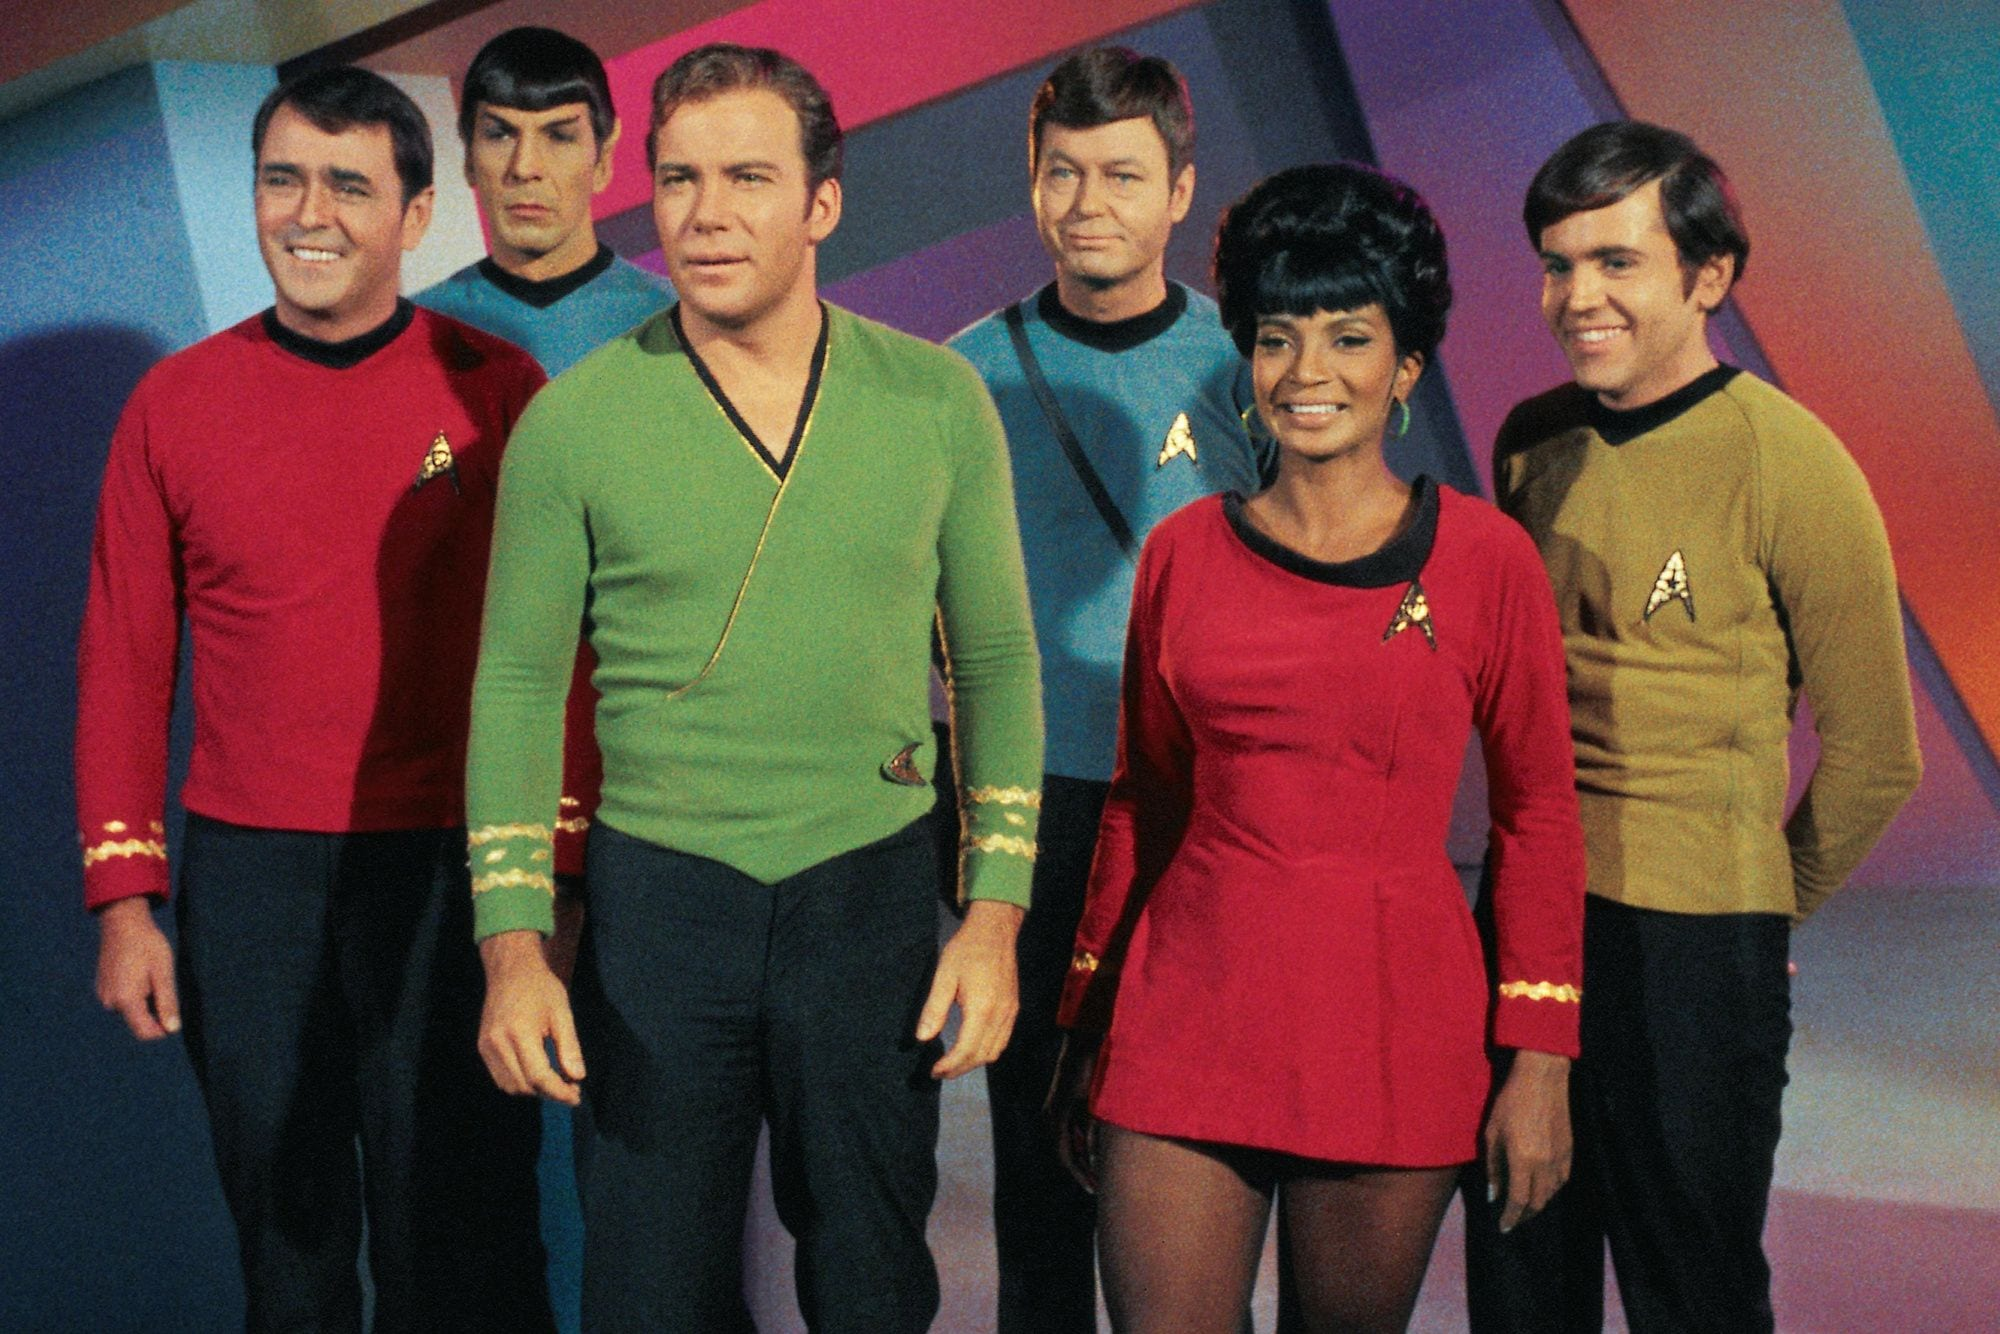 The 20 Best Episodes of 'Star Trek: The Original Series'